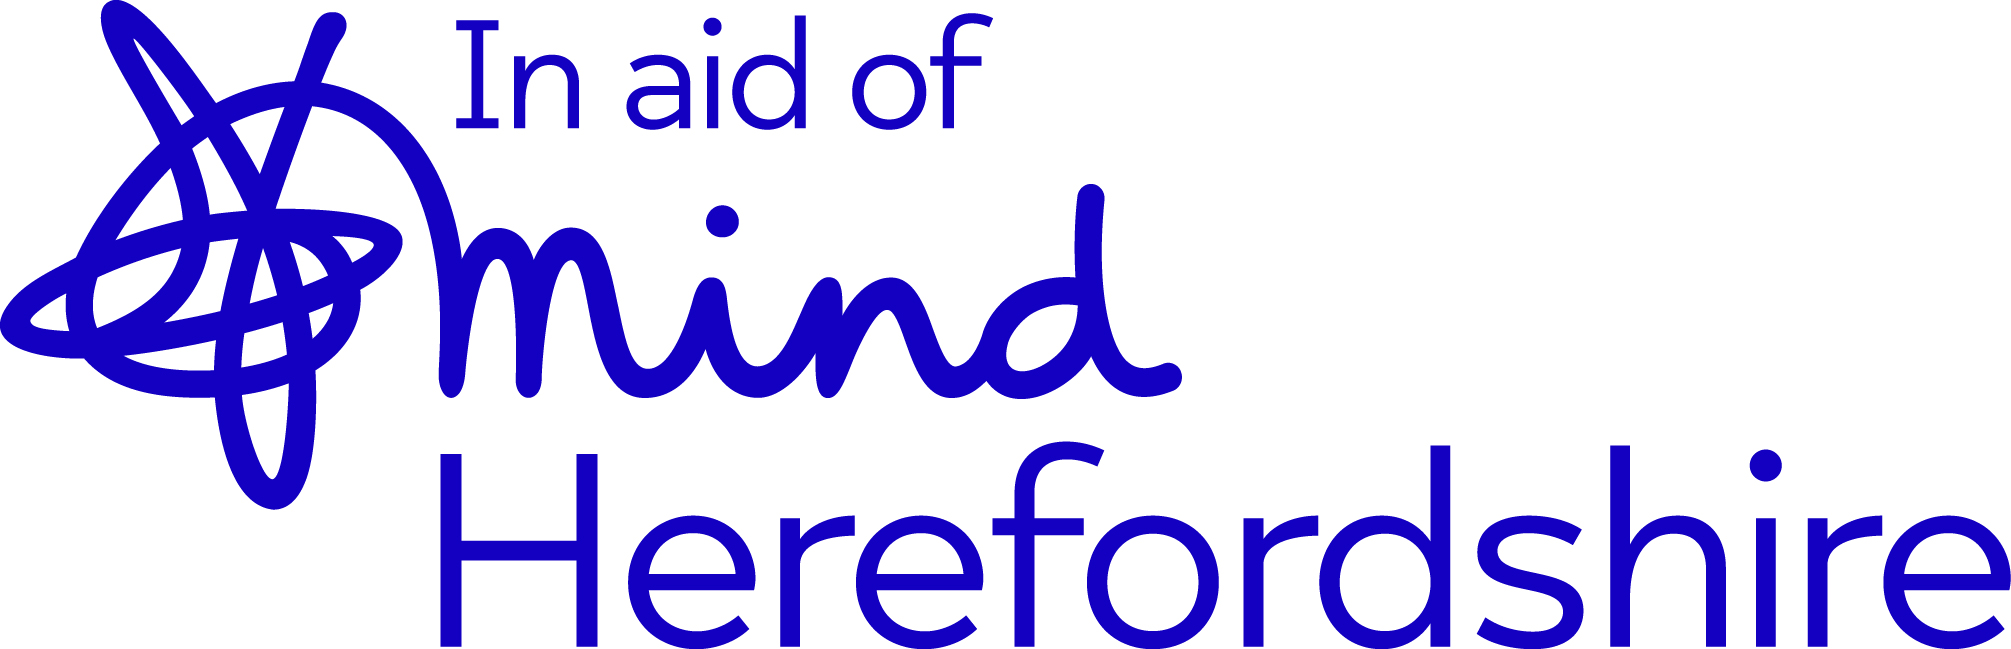 Herefordshire_Mind_In_Aid_of_Logo_stacked_RGB